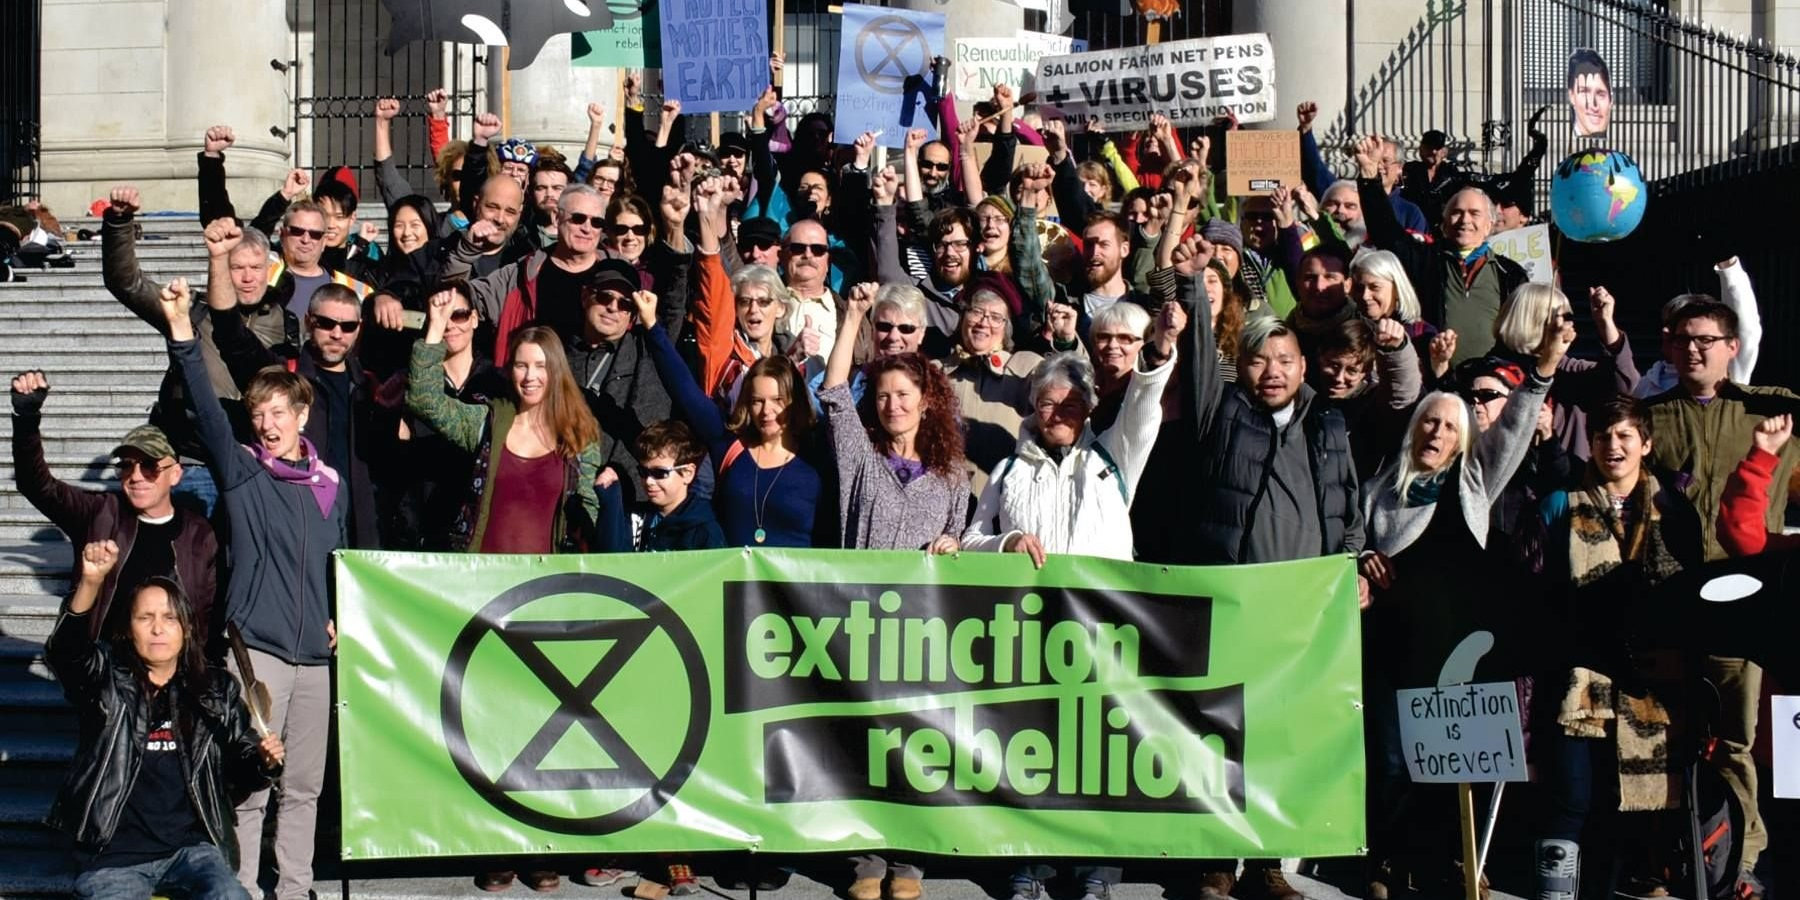 Downtown Vancouver can expect heavy traffic tomorrow as eco-radical group Extinction Rebellion will be protesting during rush hour, according to CTV.